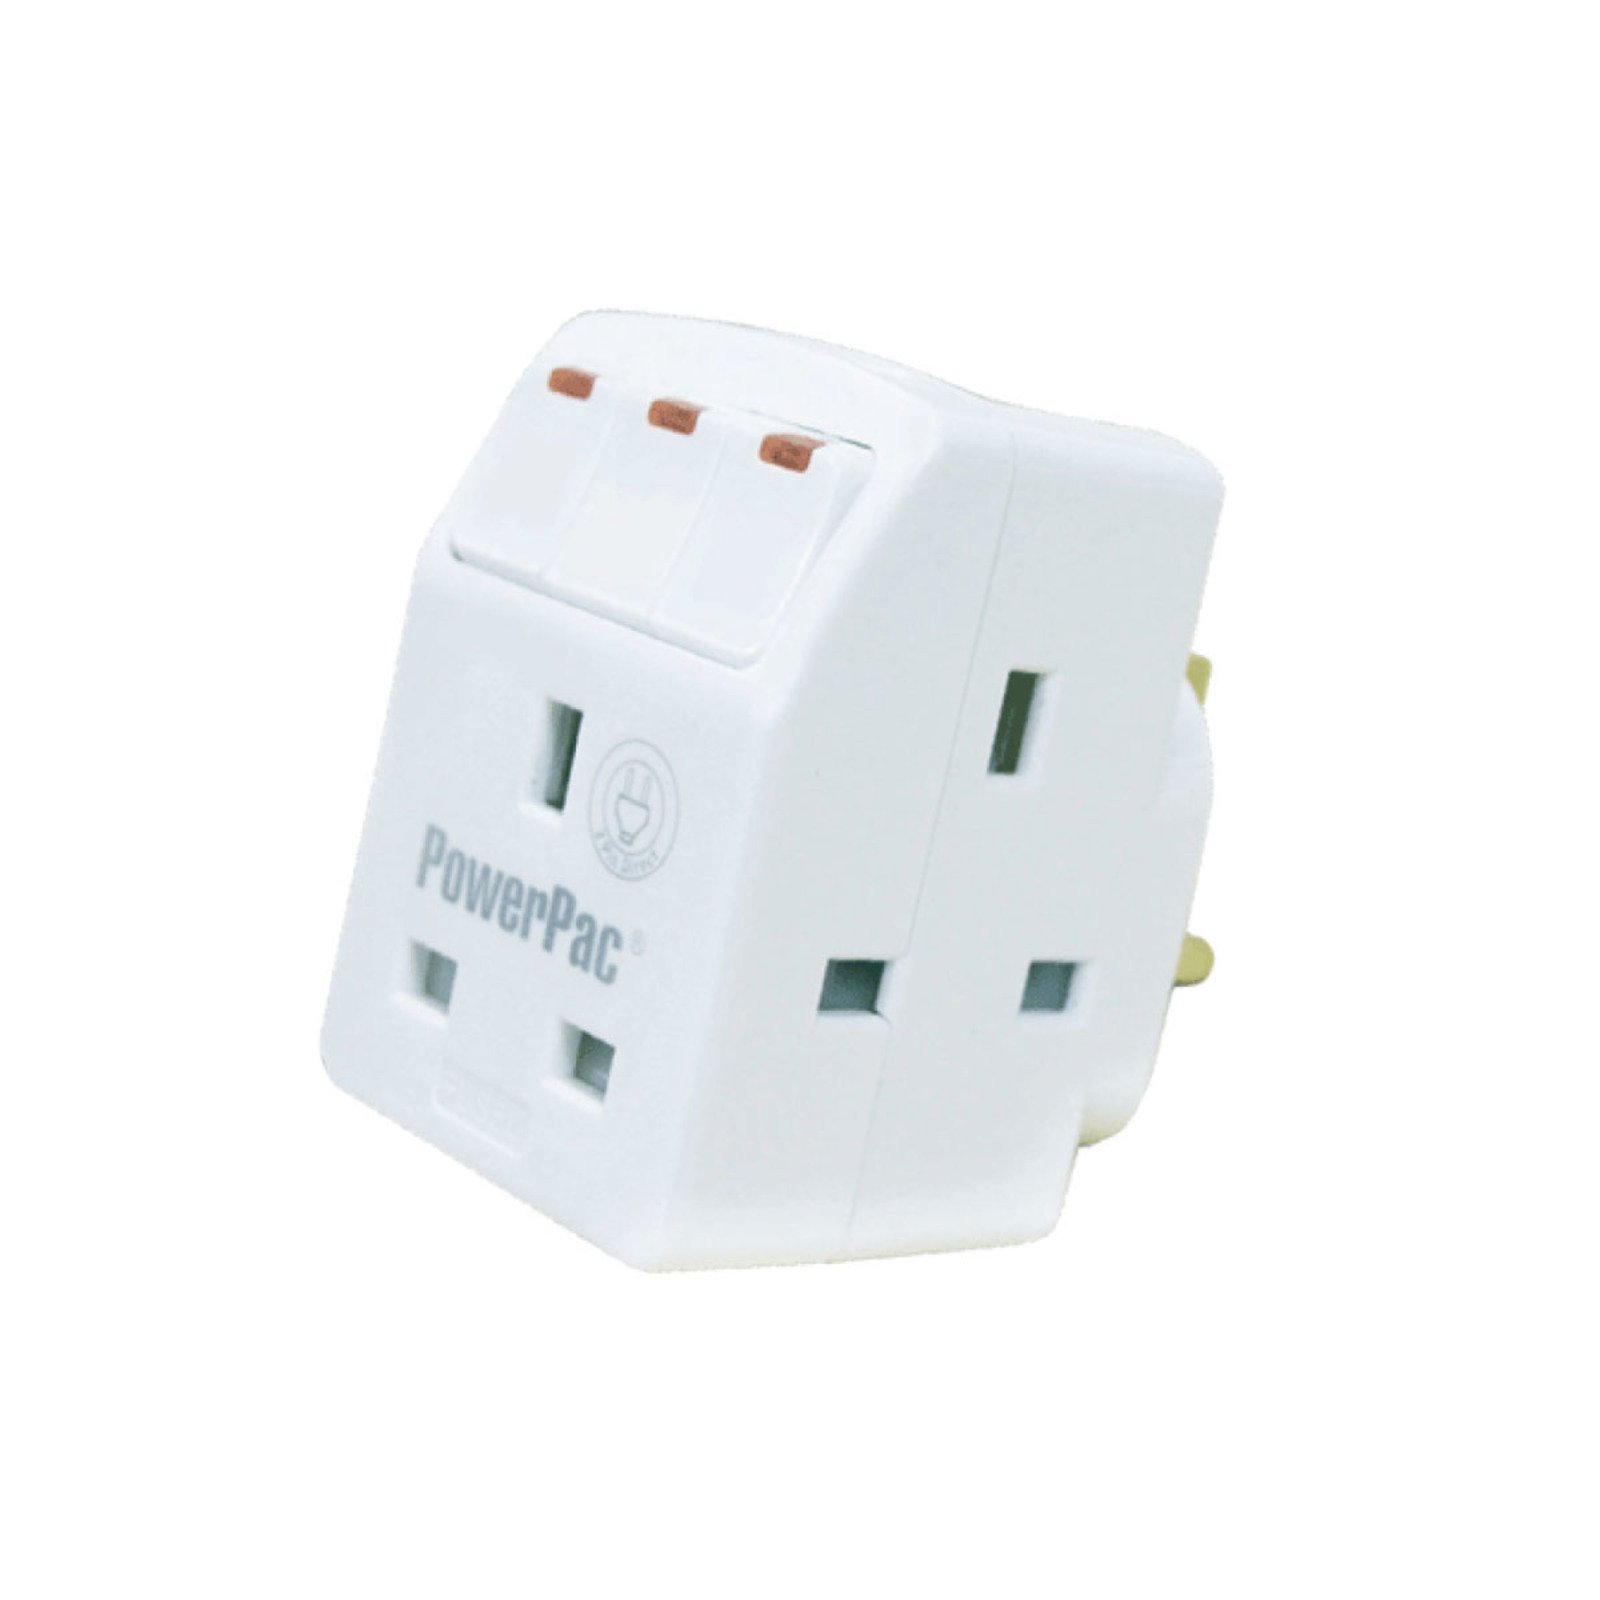 PowerPac 3 Way Adapter With Switch & 2 Pin Direct PP8733